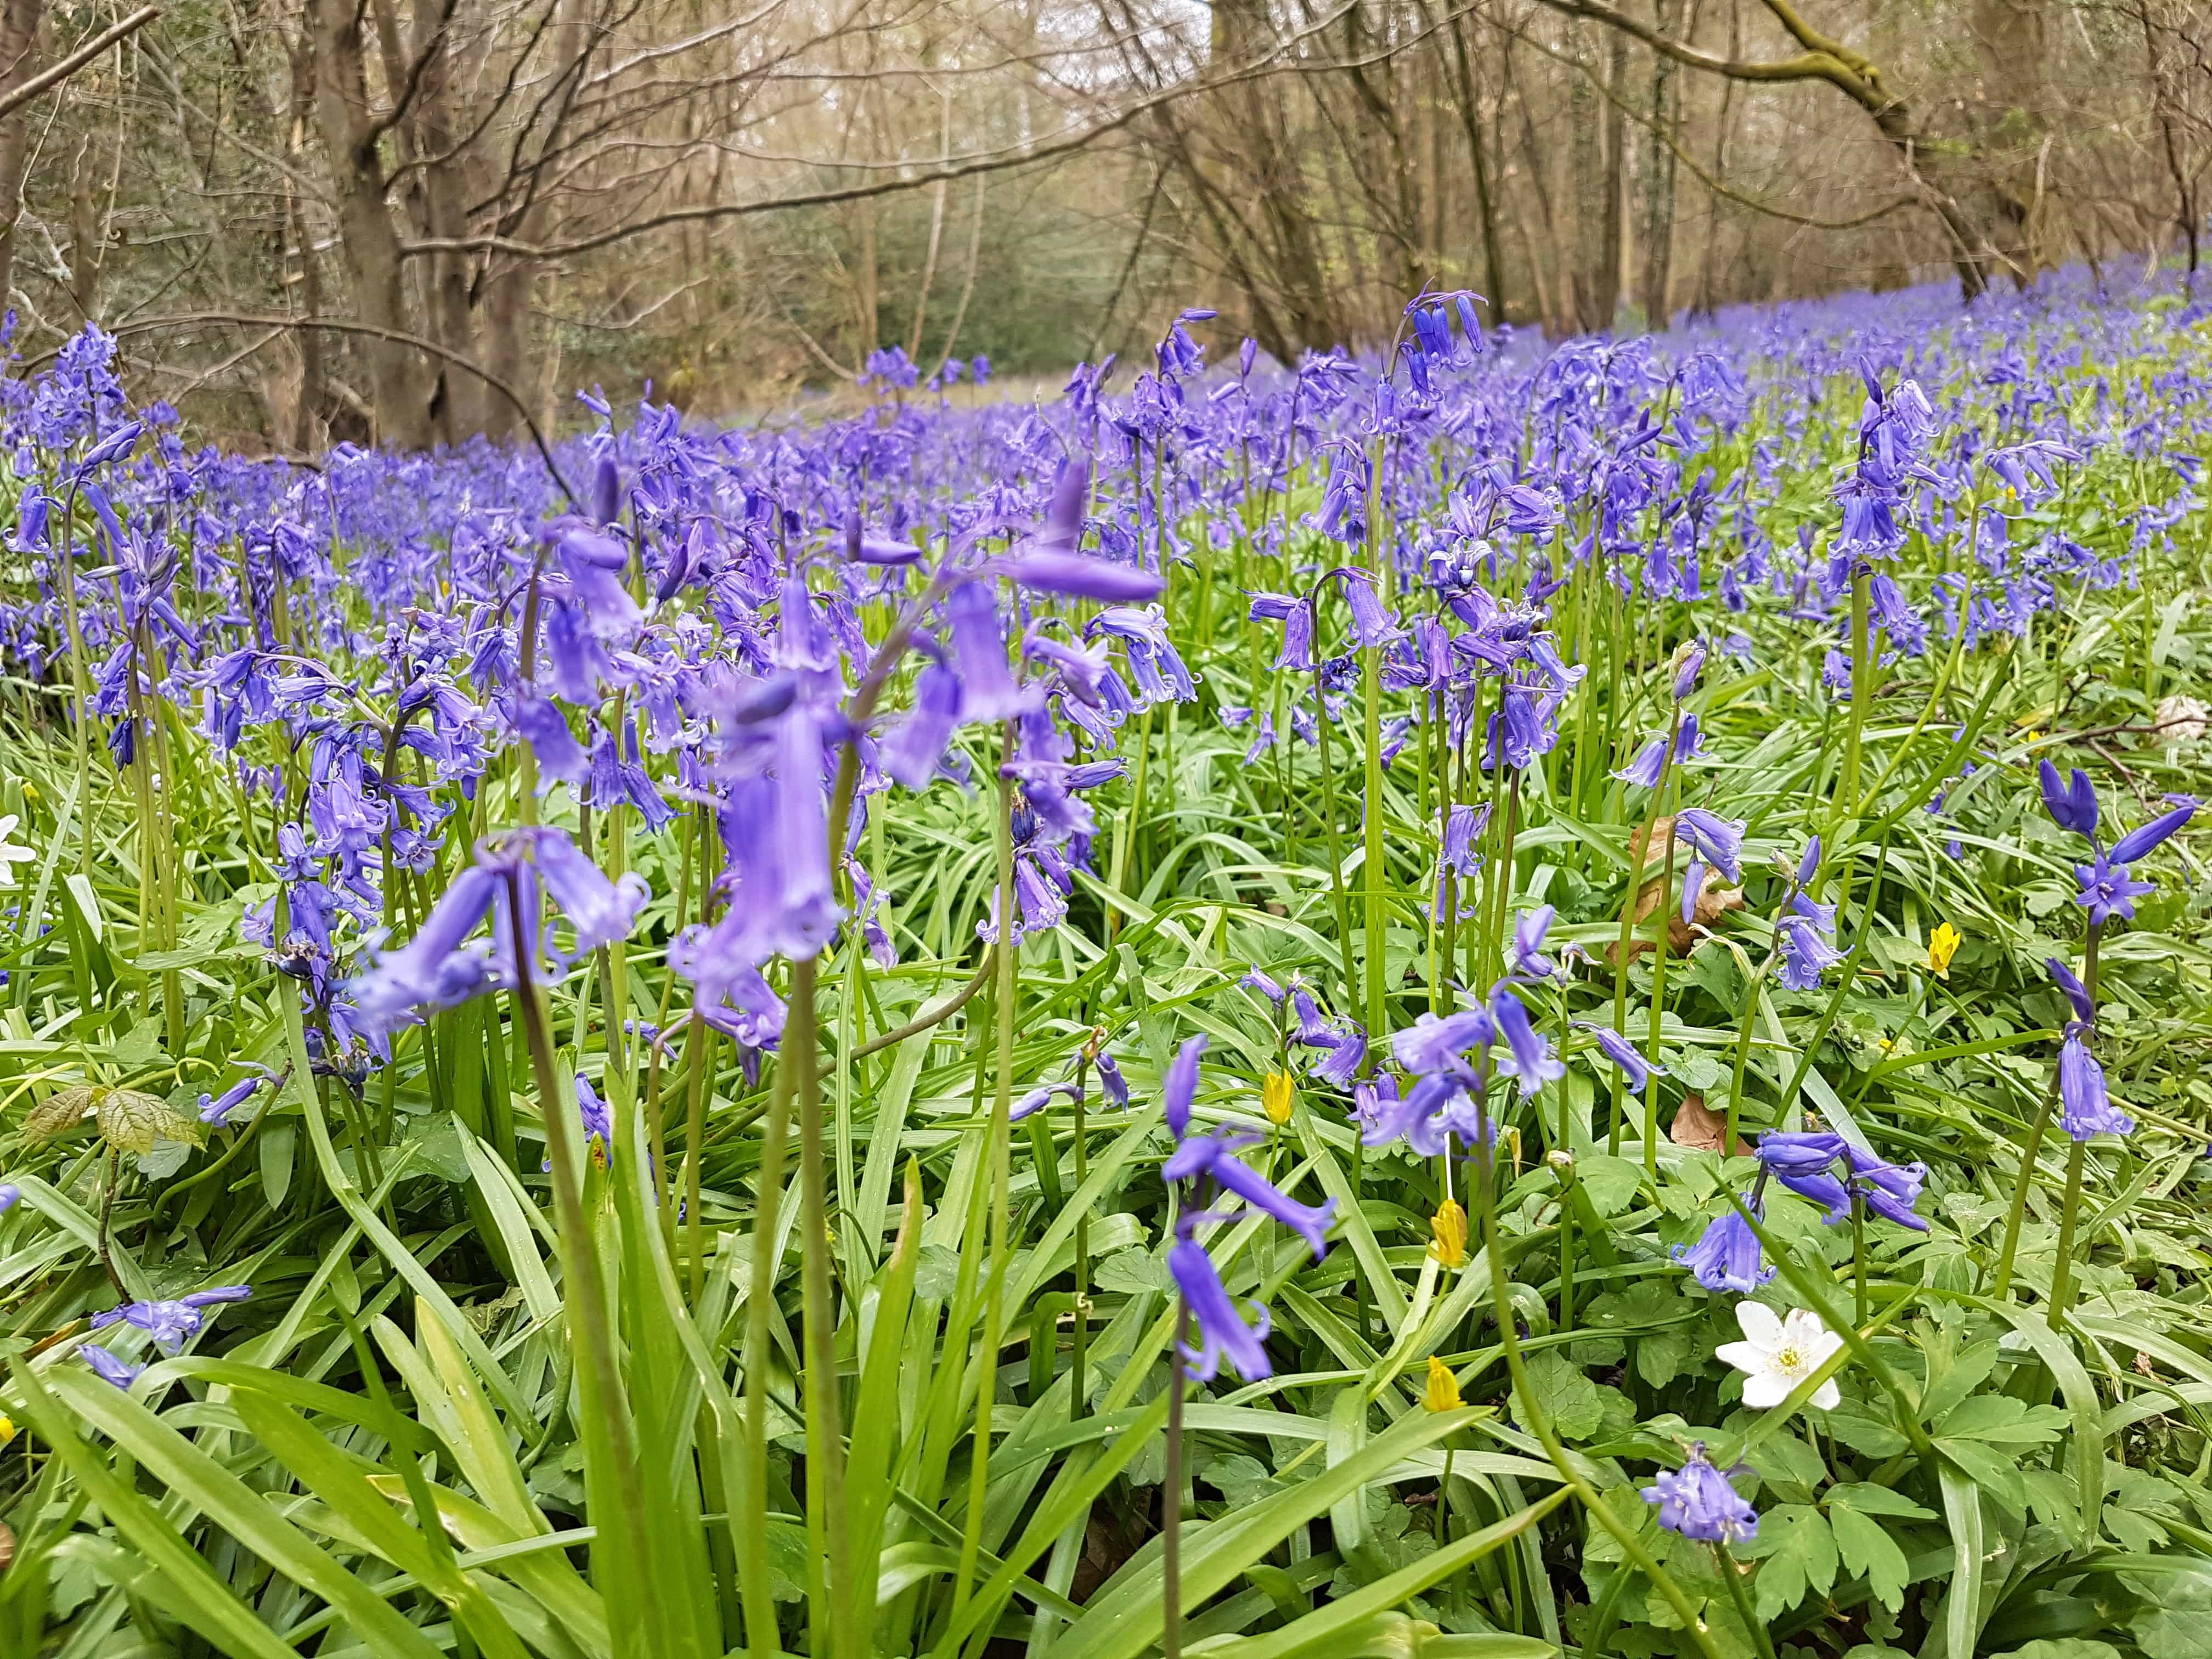 Bluebell woods, Upperford Copse, Forest of Bere